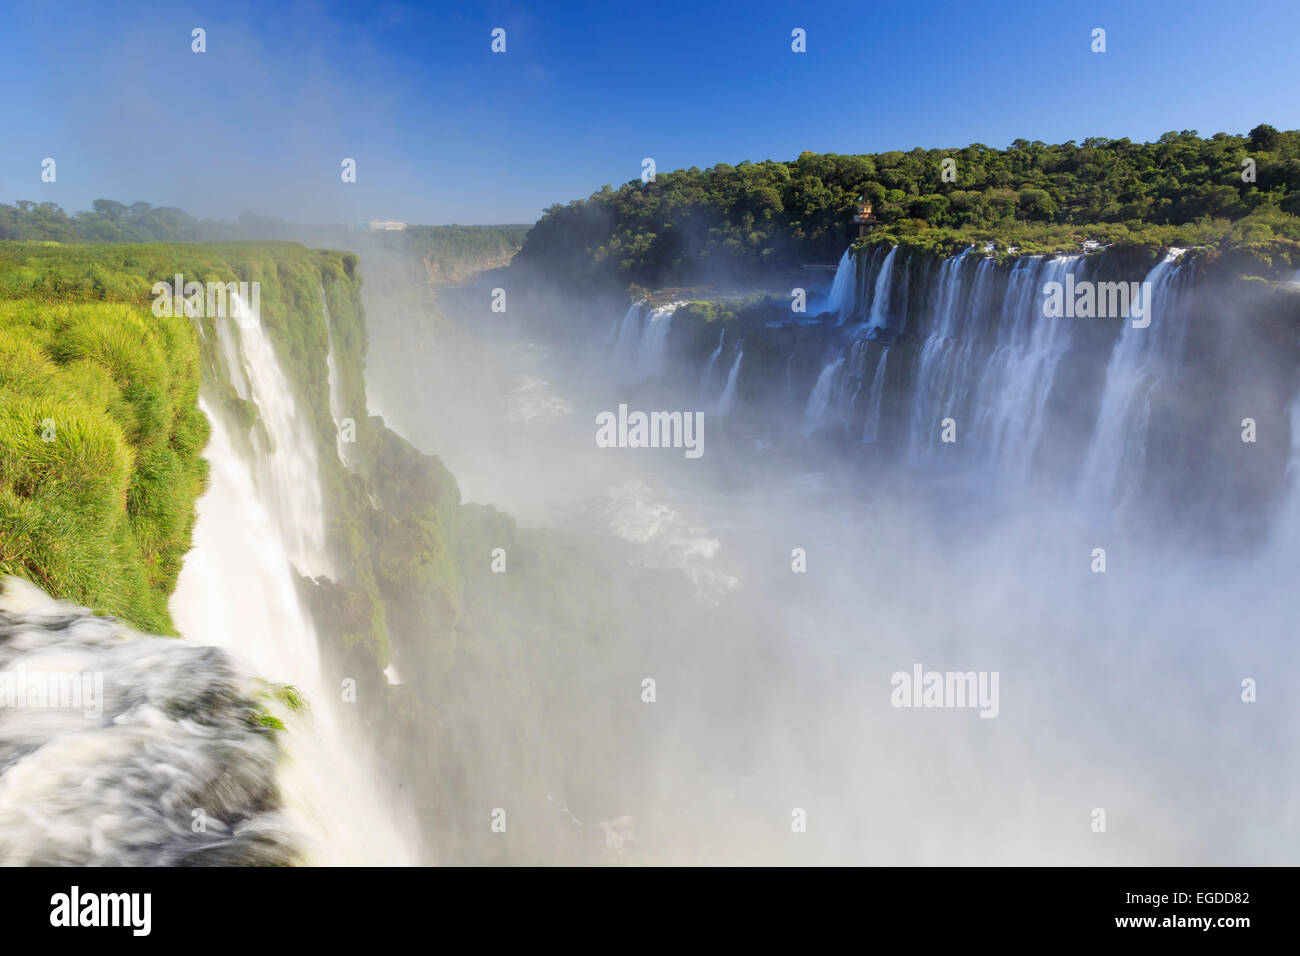 Argentina, Iguazu Falls National Park, (UNESCO Site), Devil's Throat - Stock Image